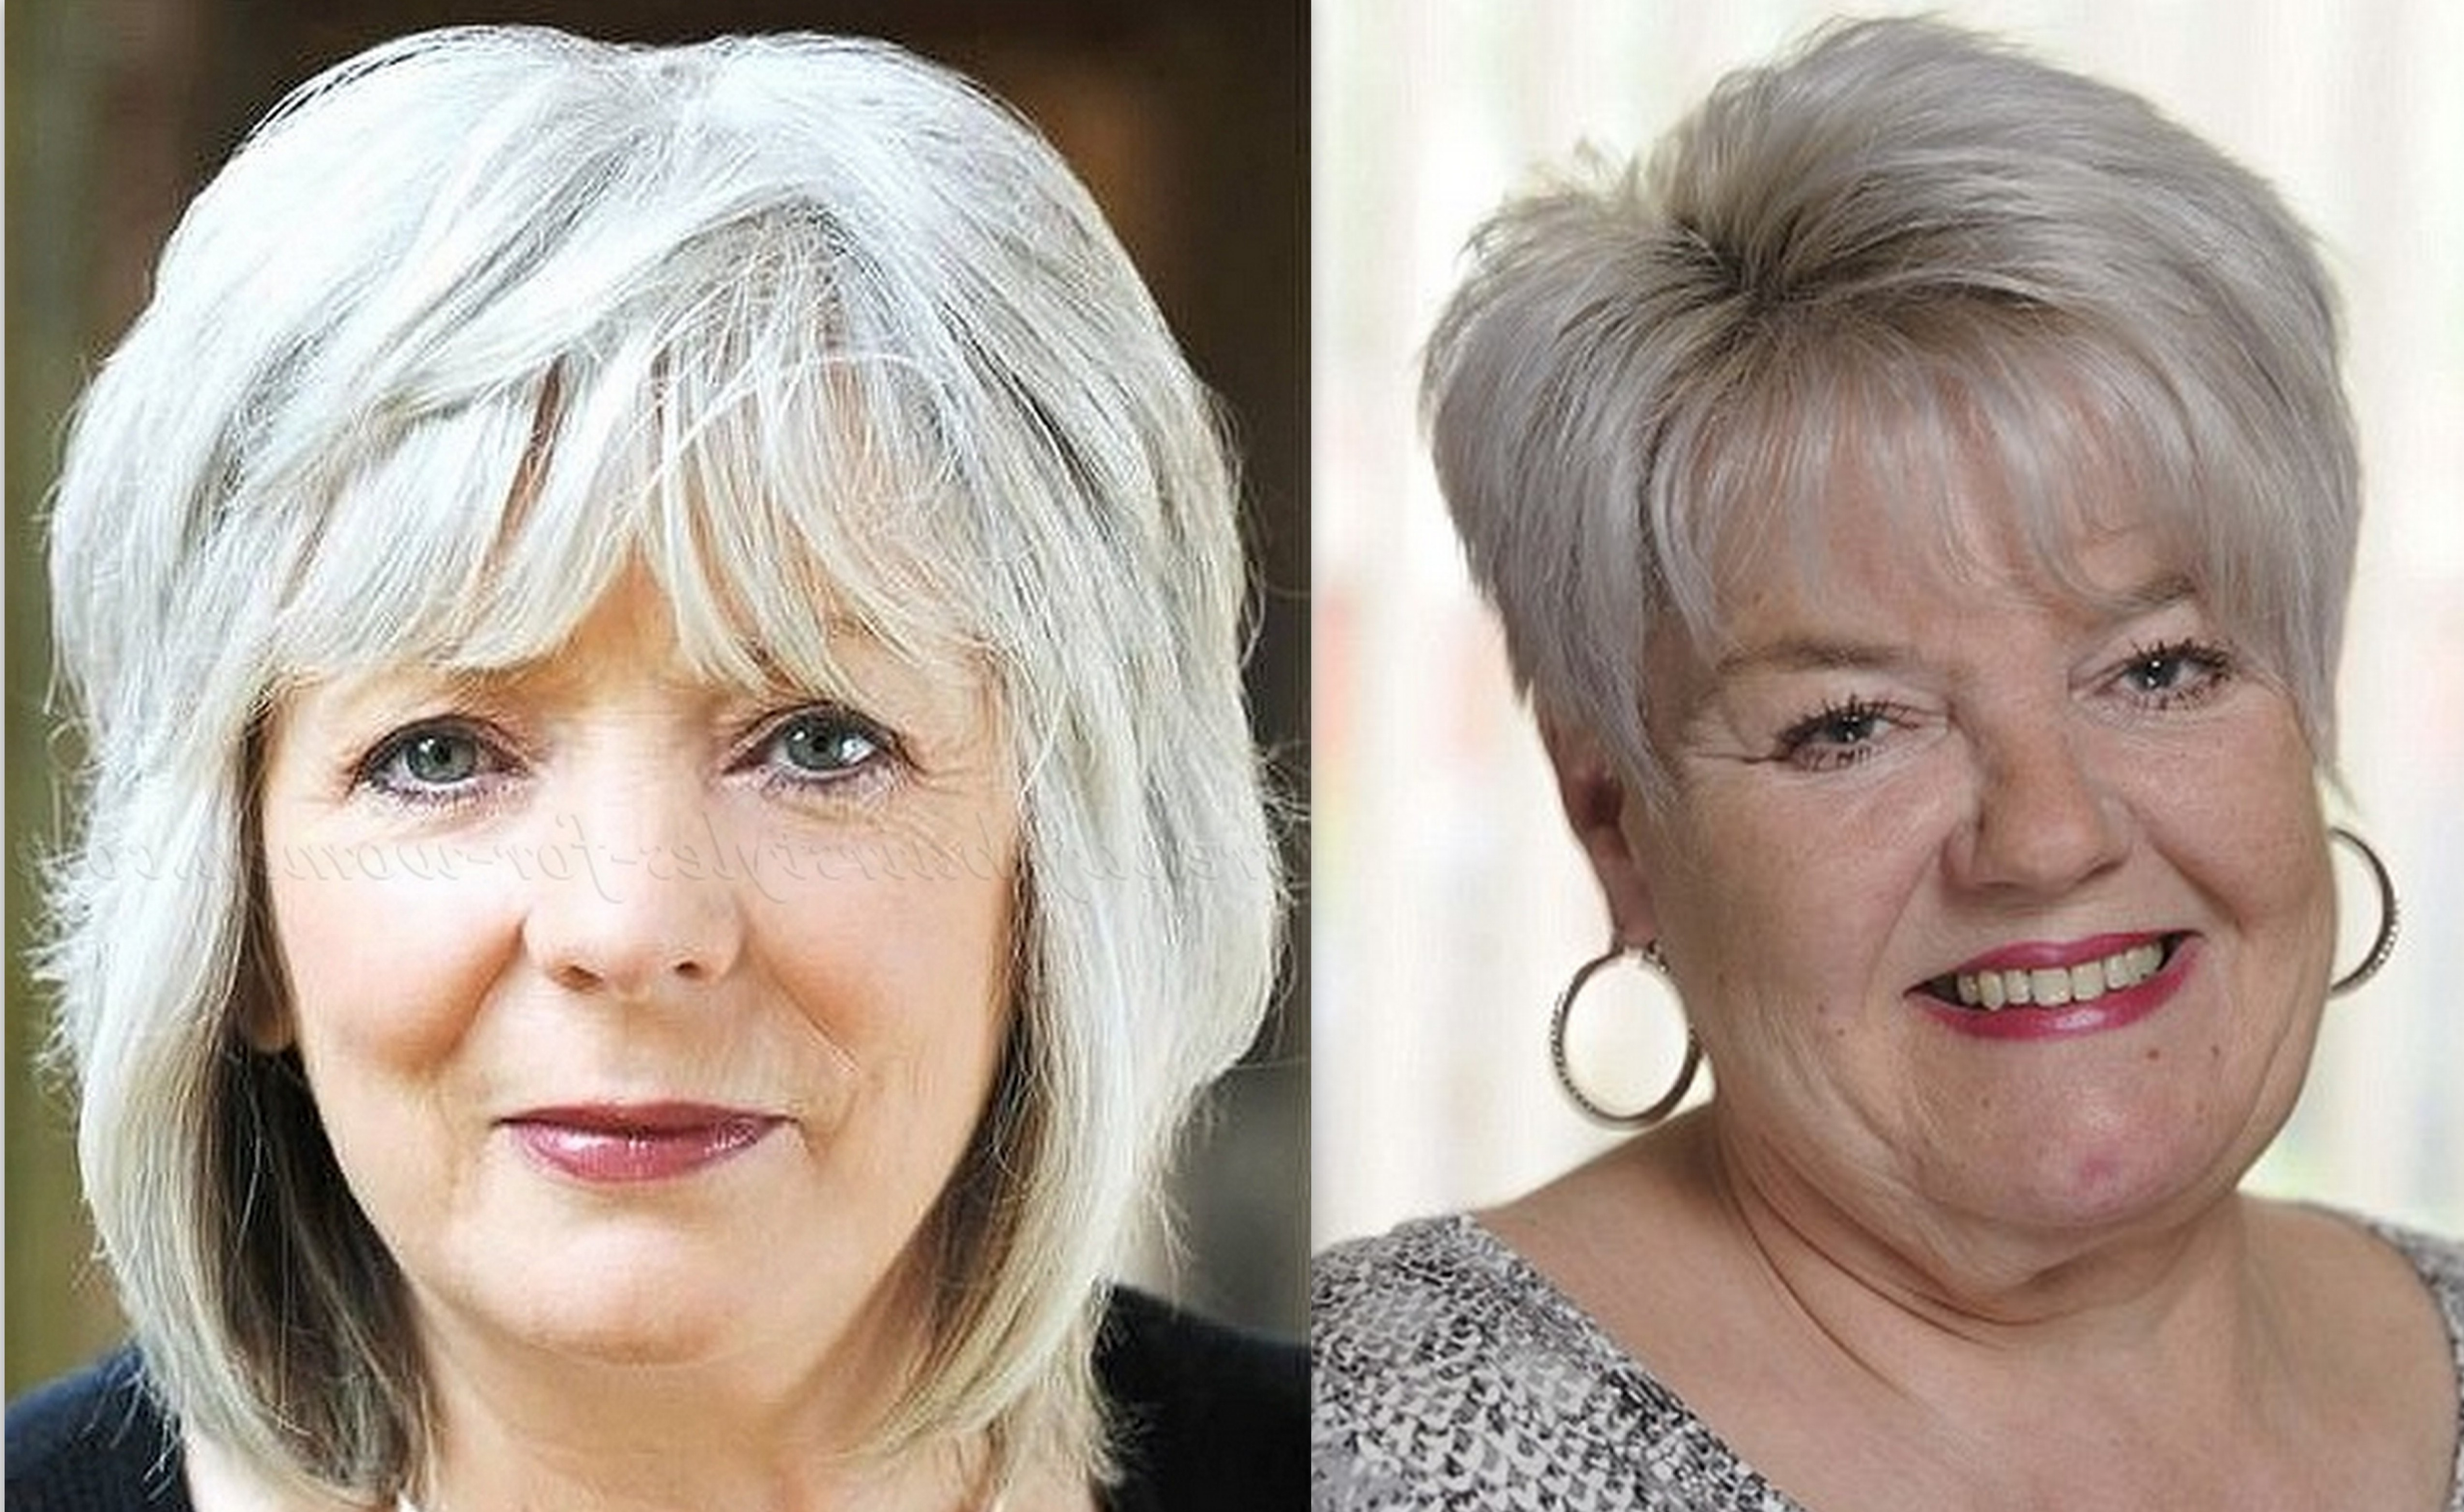 50 Latest Hairstyles For Over 60 With Round Face 2019 – Plus Size For Well Liked Medium Hairstyles For Obese Faces (Gallery 11 of 20)